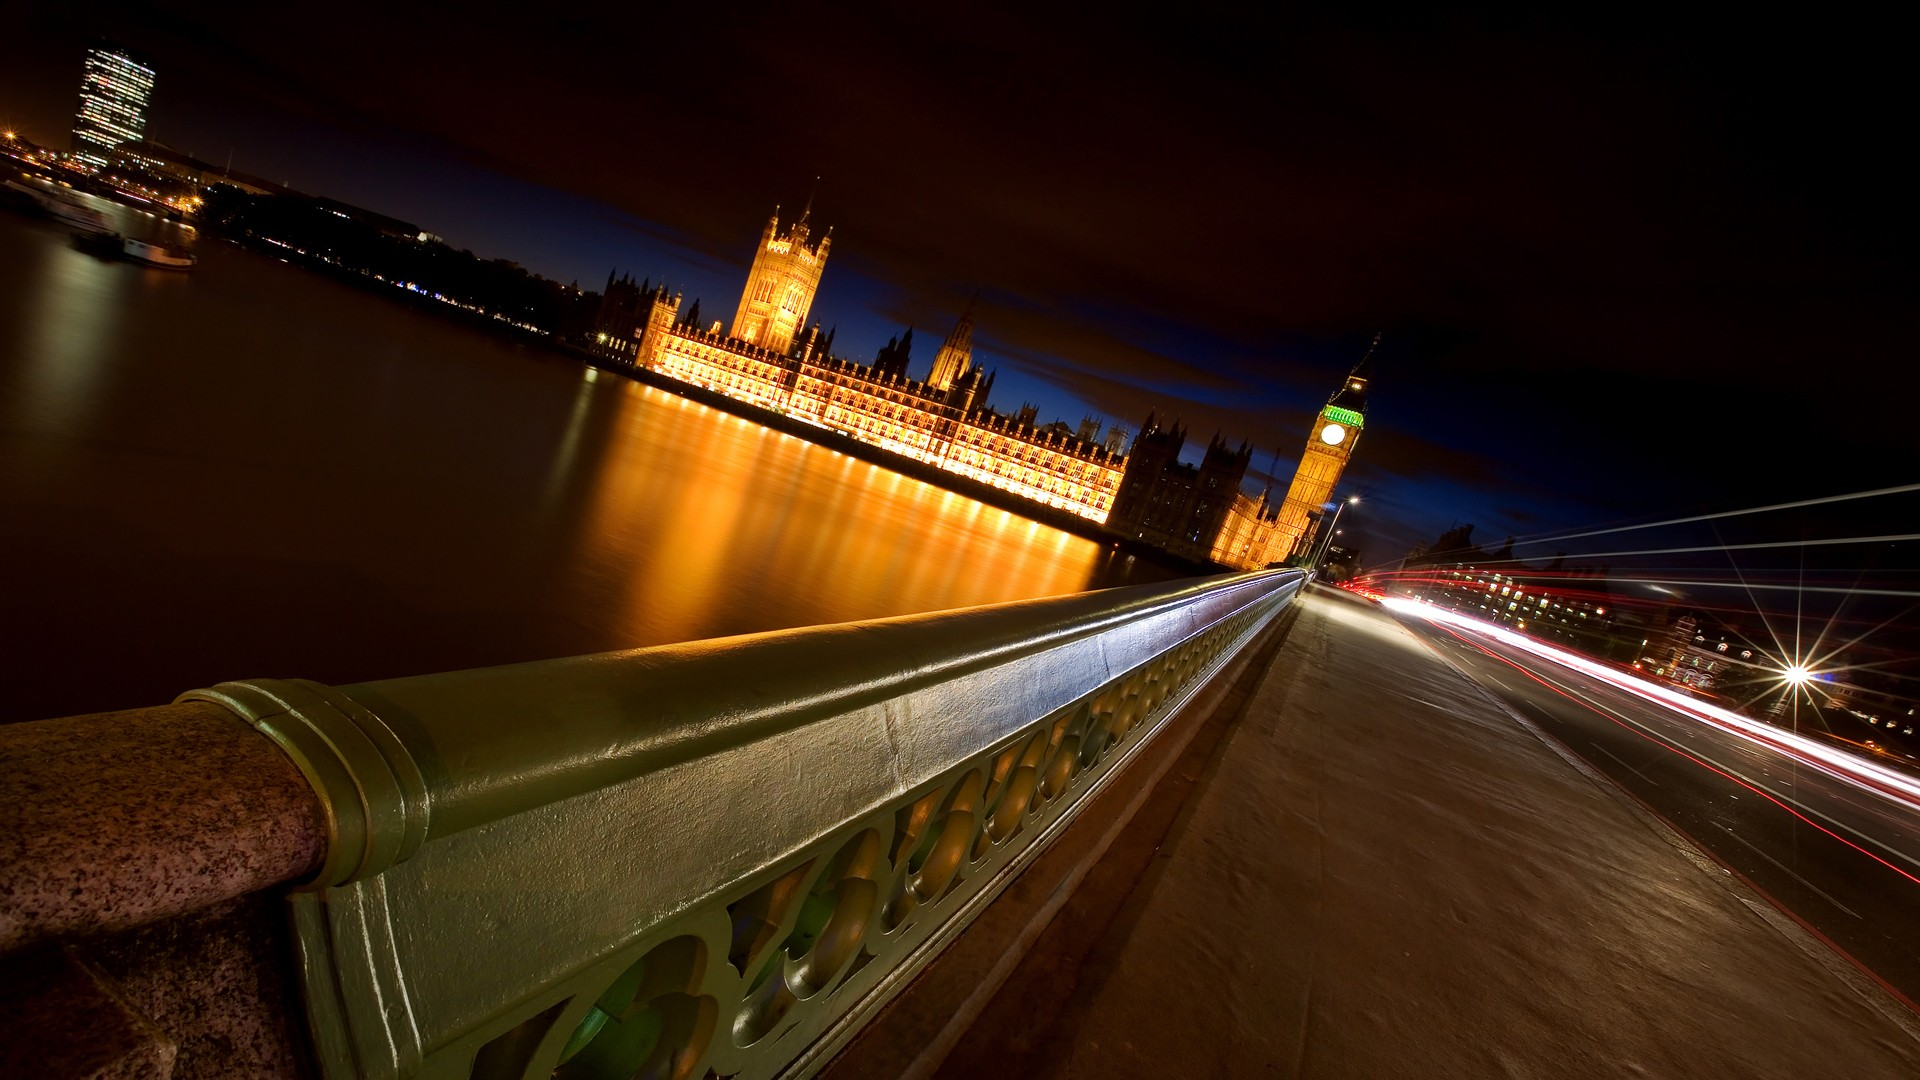 General 1920x1080 cityscape London River Thames Westminster bridge photography water night building architecture lights long exposure urban city street Big Ben UK